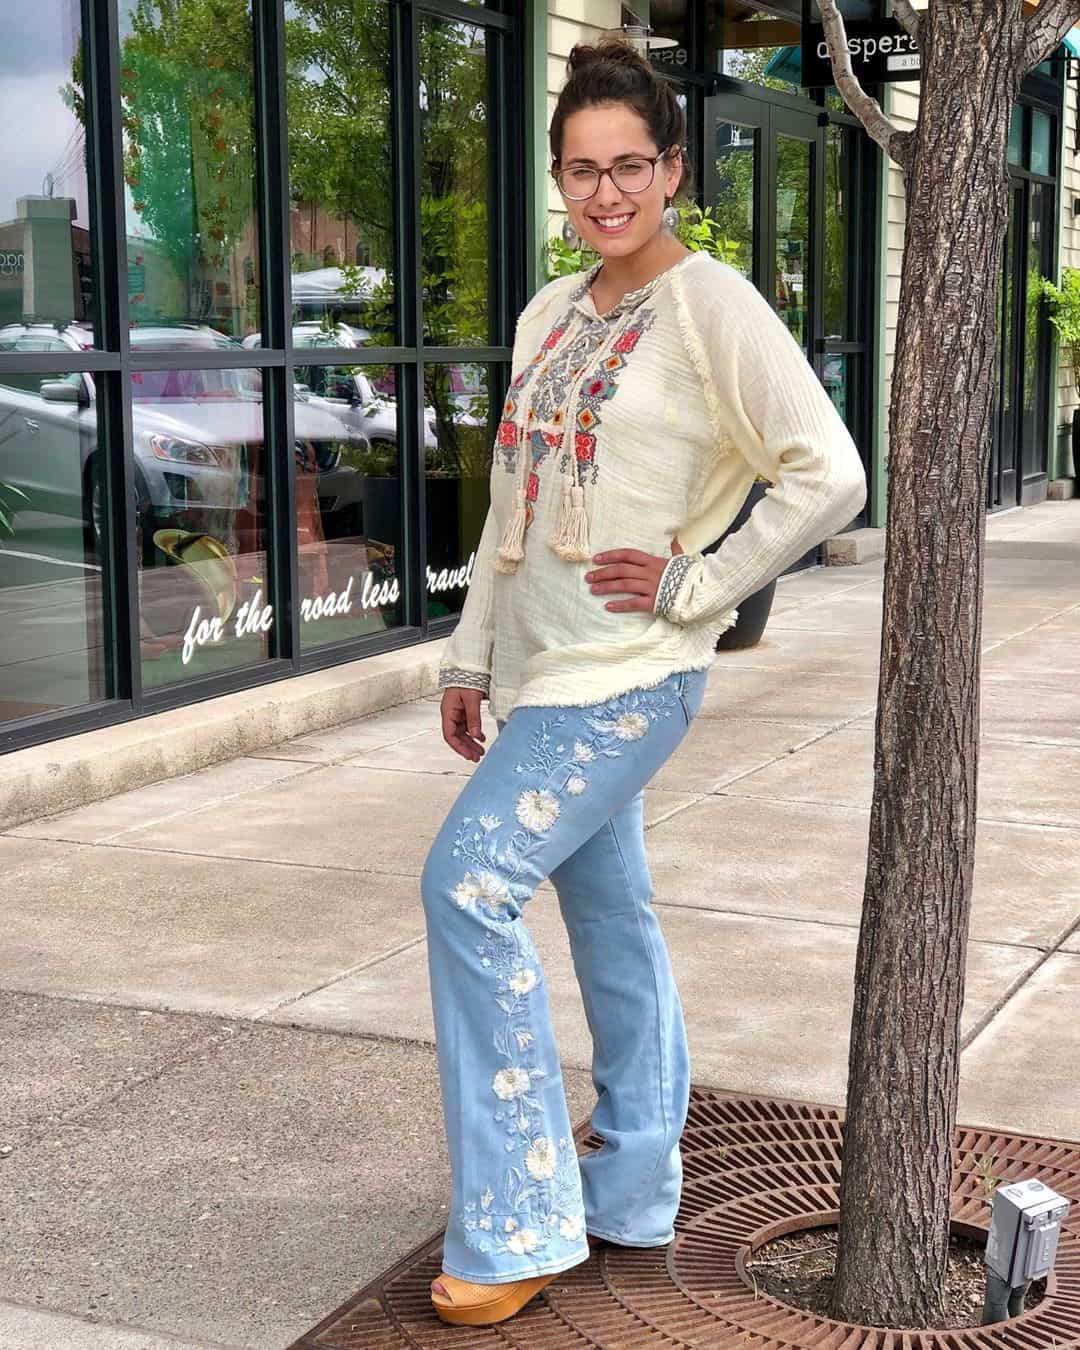 Bell Jeans with Embroidery